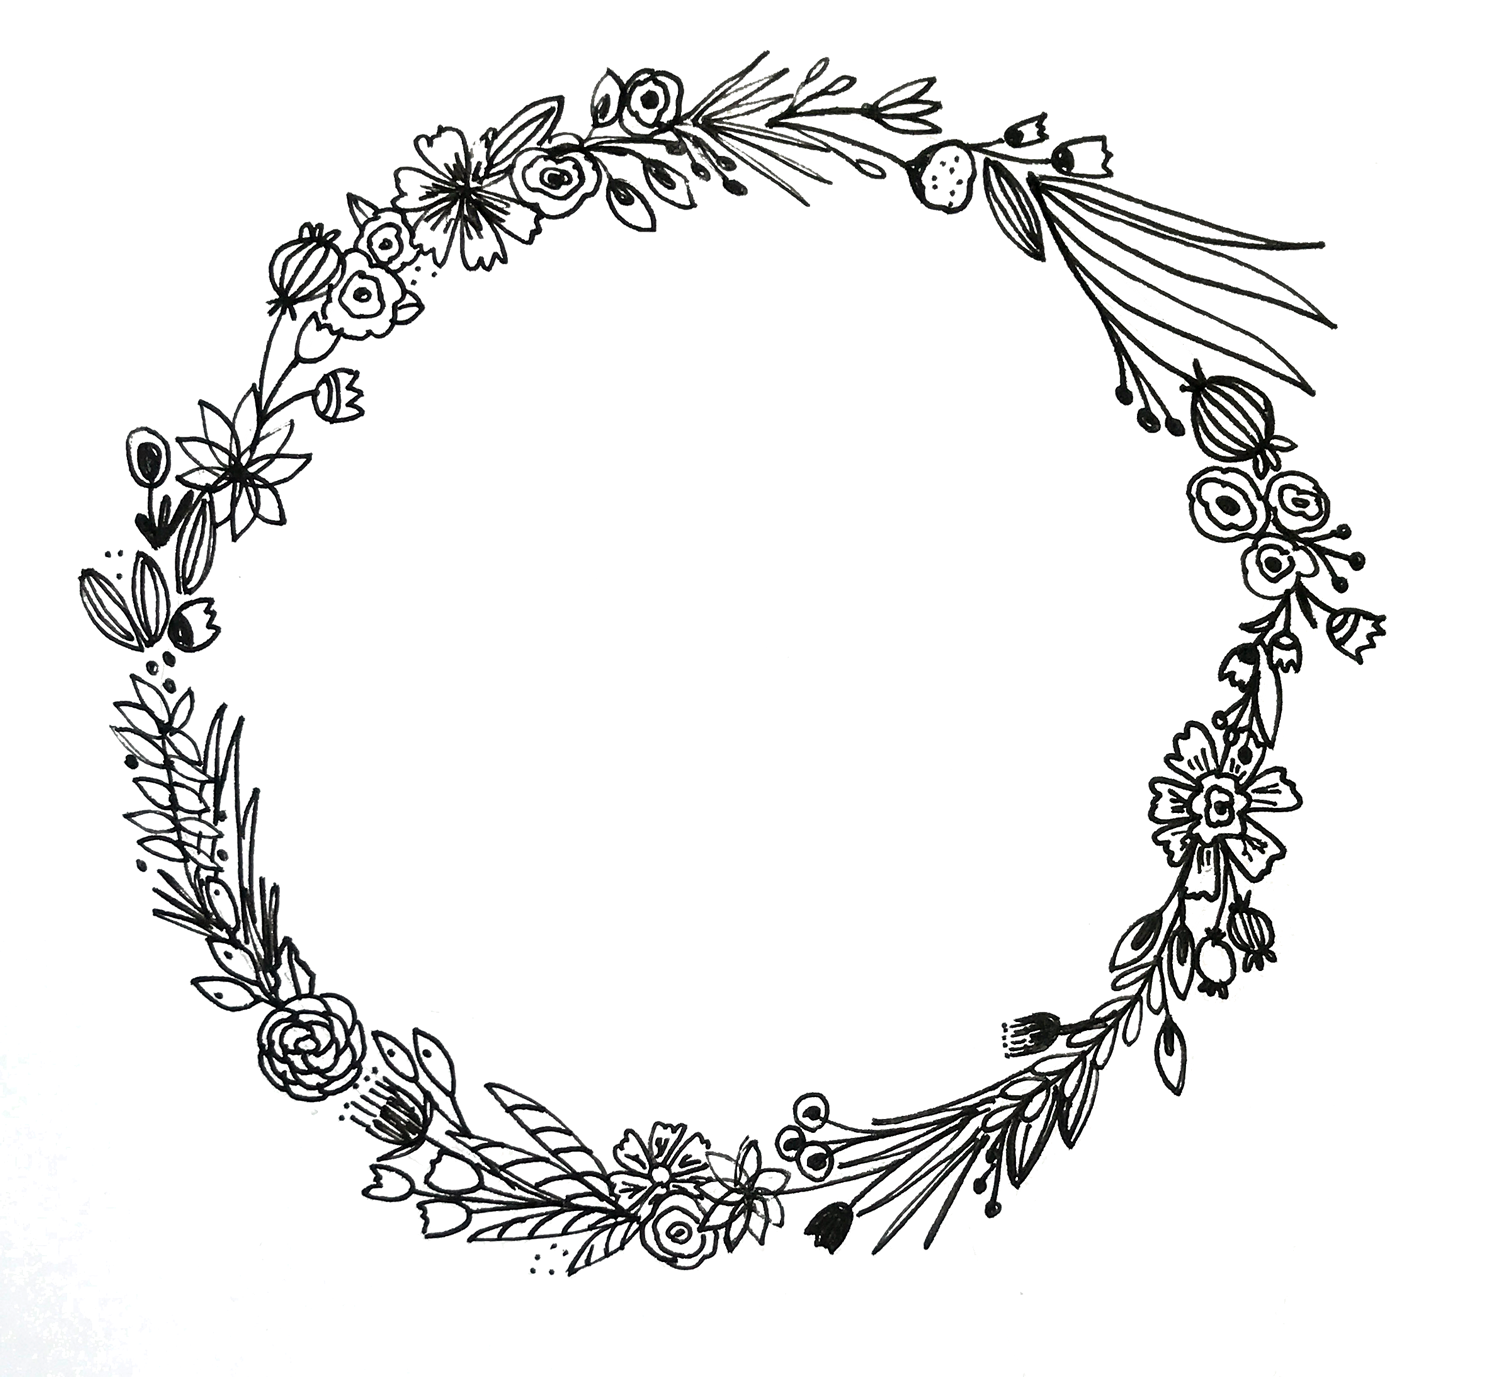 How to draw a floral wreath...super easy and fun! Via delightedco.com